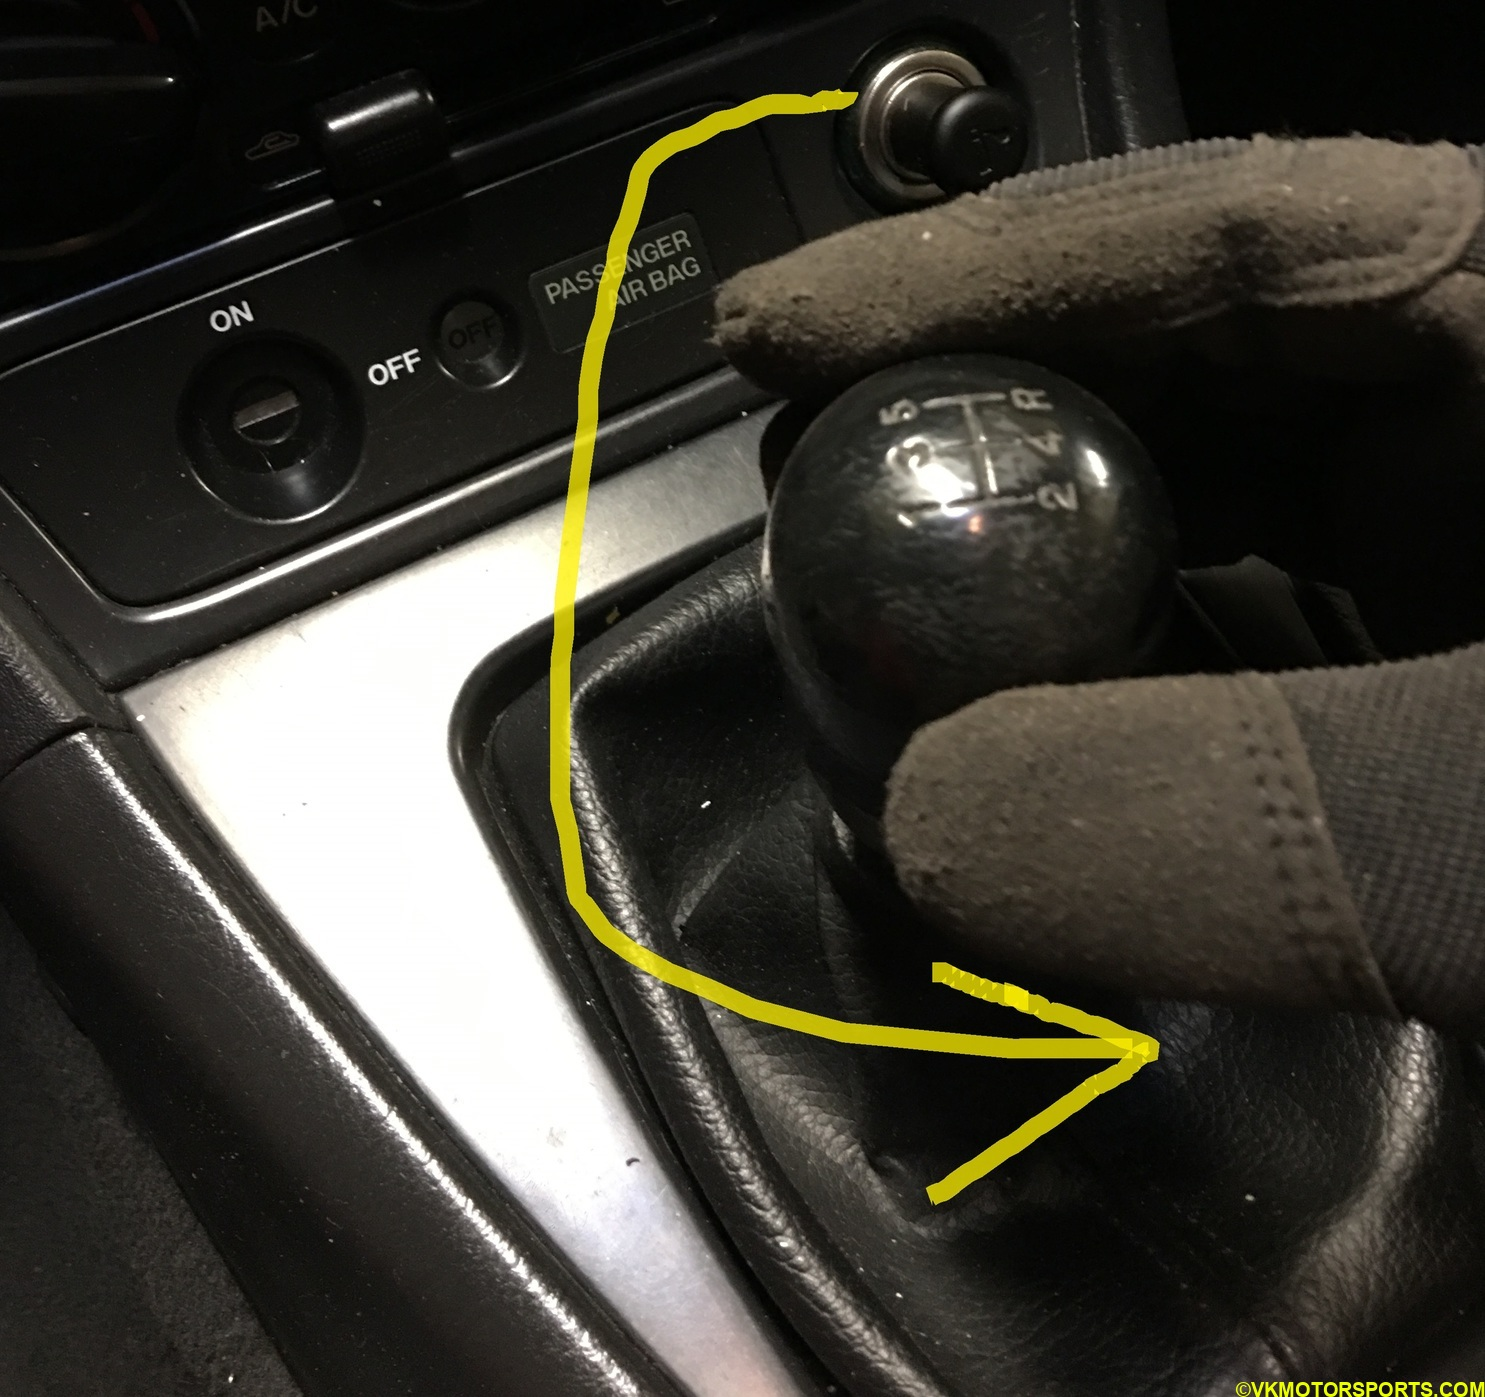 Figure 4. Counter-clockwise rotate the shift knob